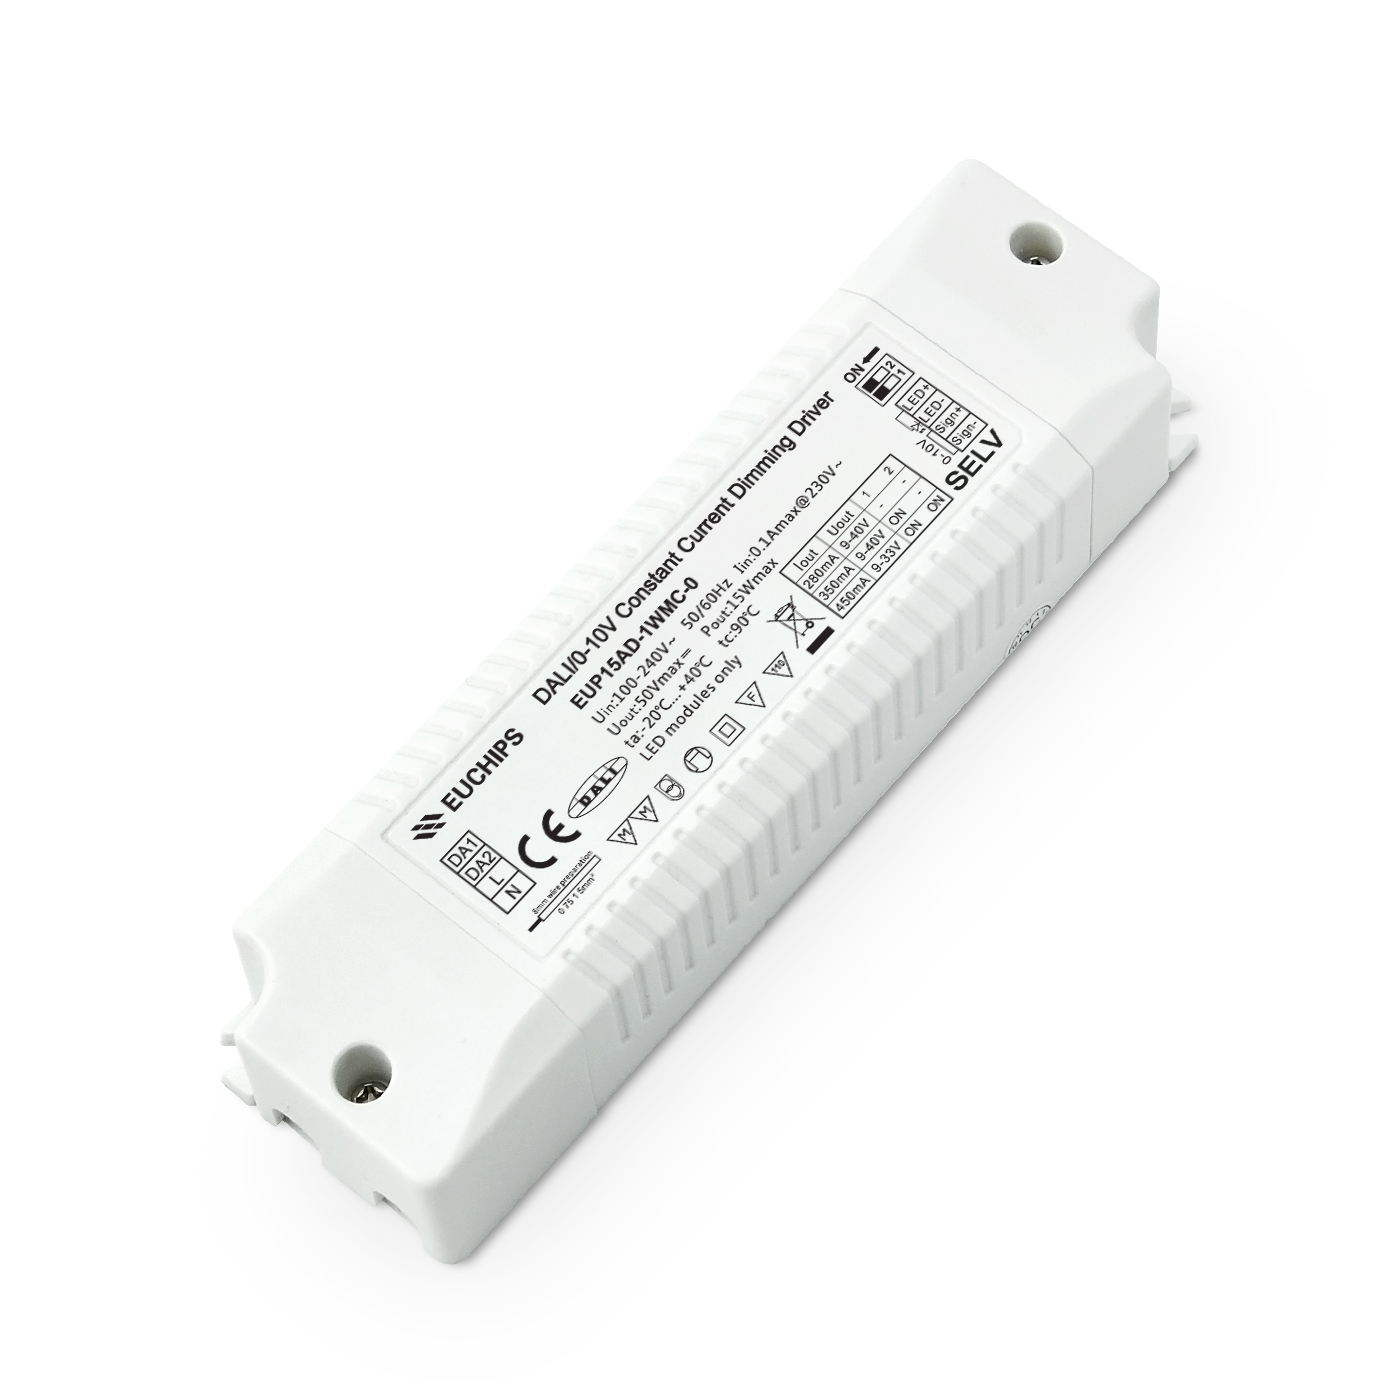 Quoted price for 250w Led Street Light -